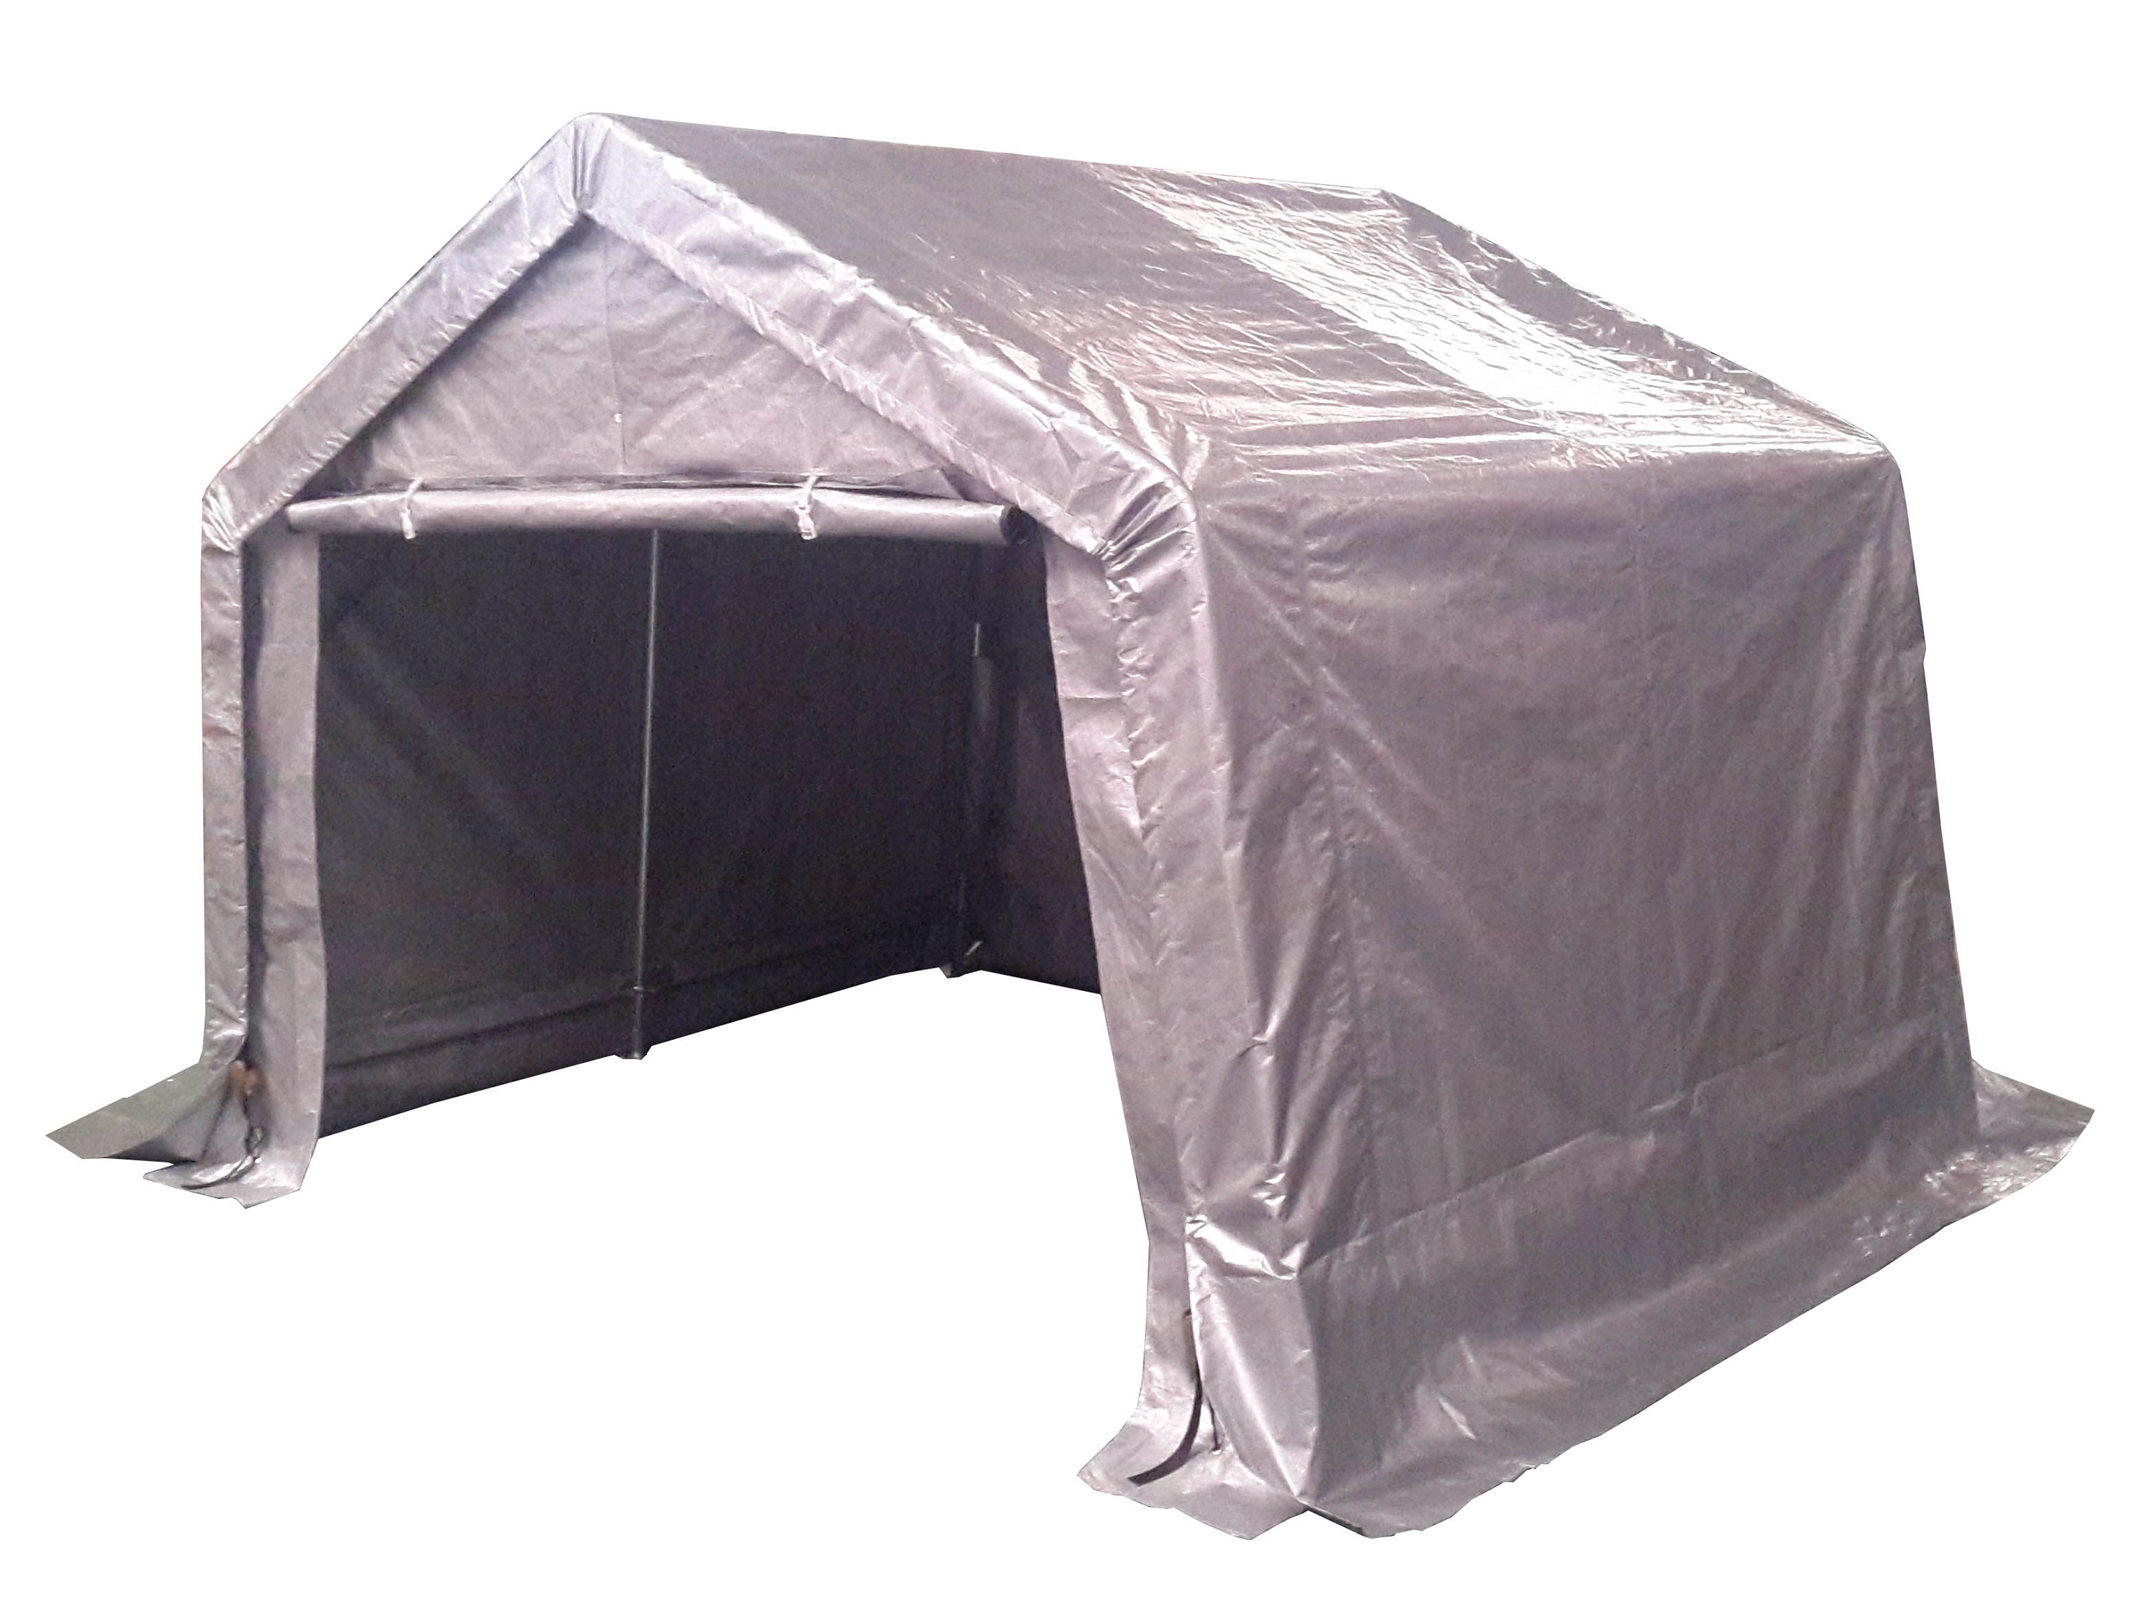 Sentinel FoxHunter Waterproof Motor Bike Cover Storage Shed Tent Garage Barn Galvanized  sc 1 st  eBay & FoxHunter Waterproof Motor Bike Cover Storage Shed Tent Garage ...